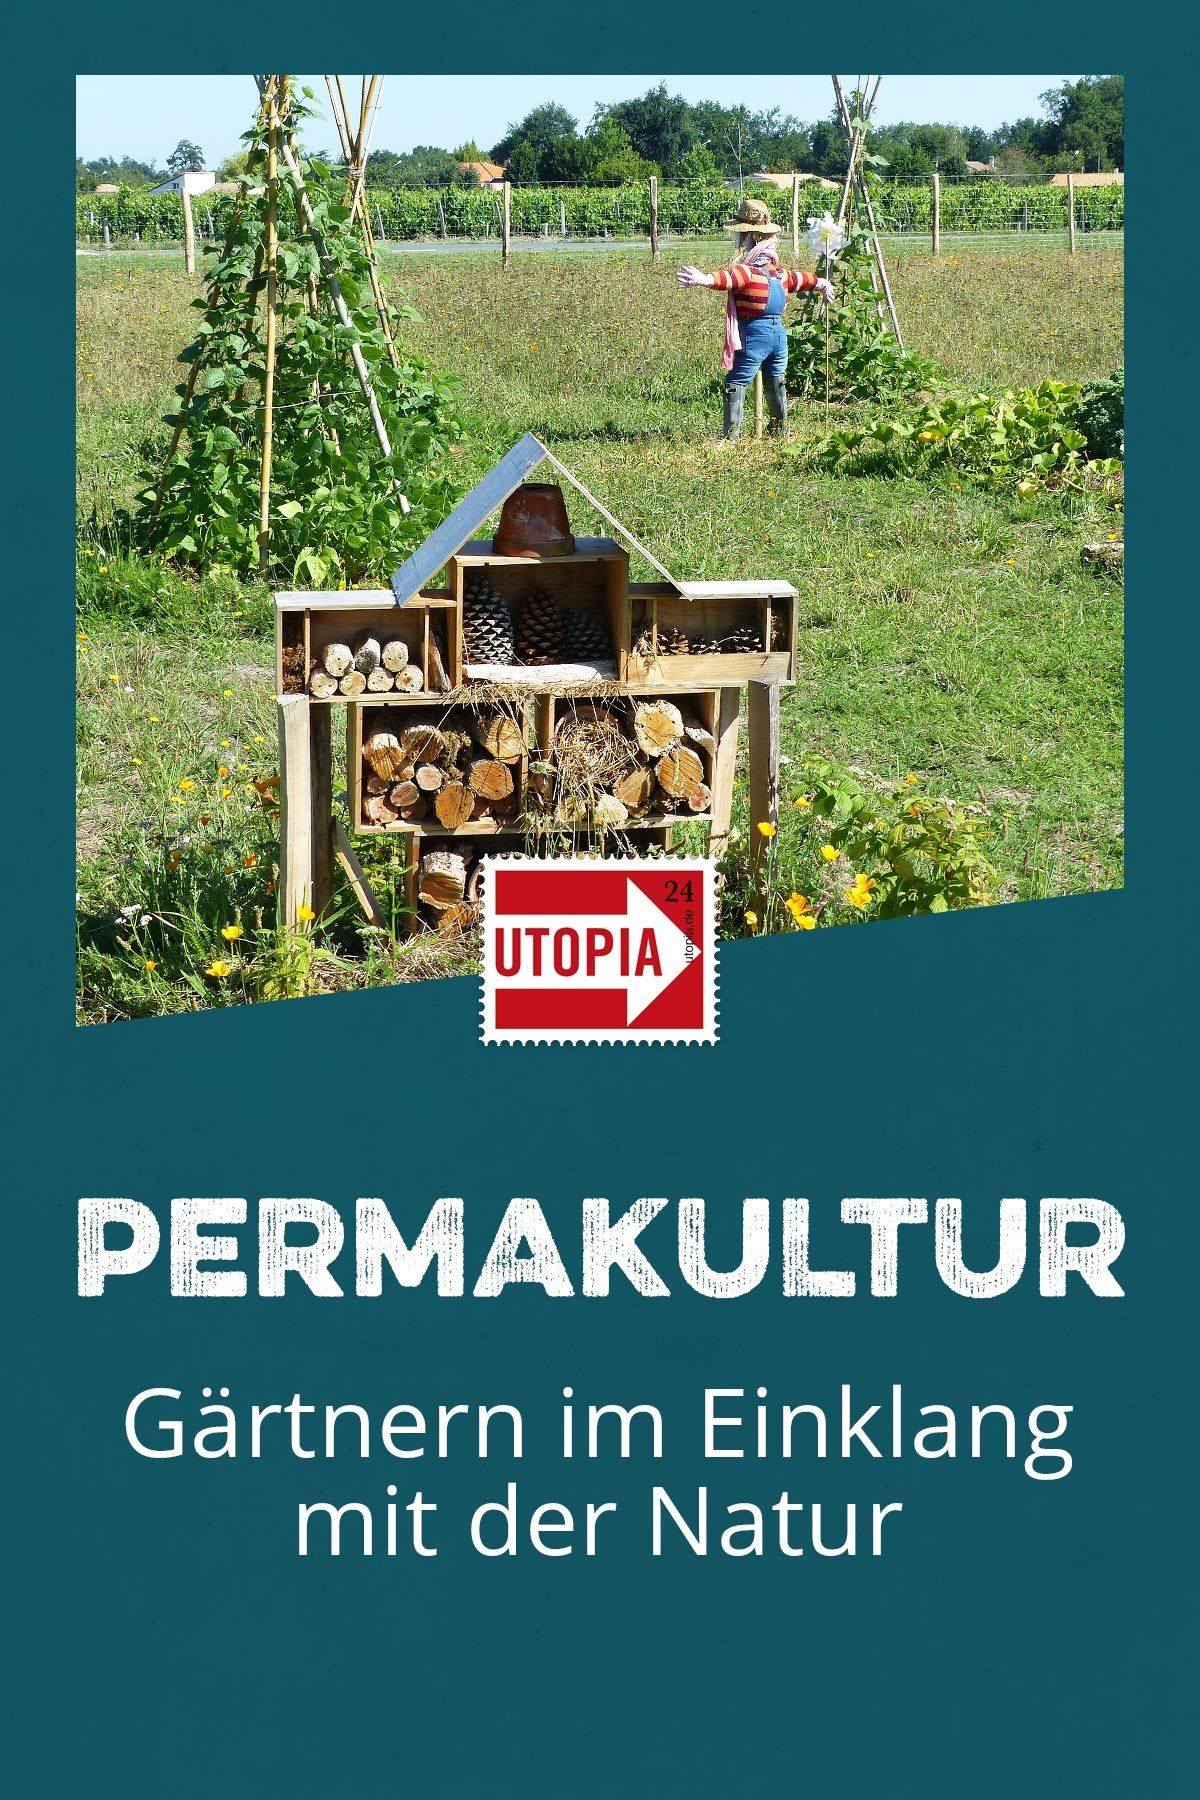 Photo of Permakultur: hagearbeid i harmoni med naturen – Utopia.de